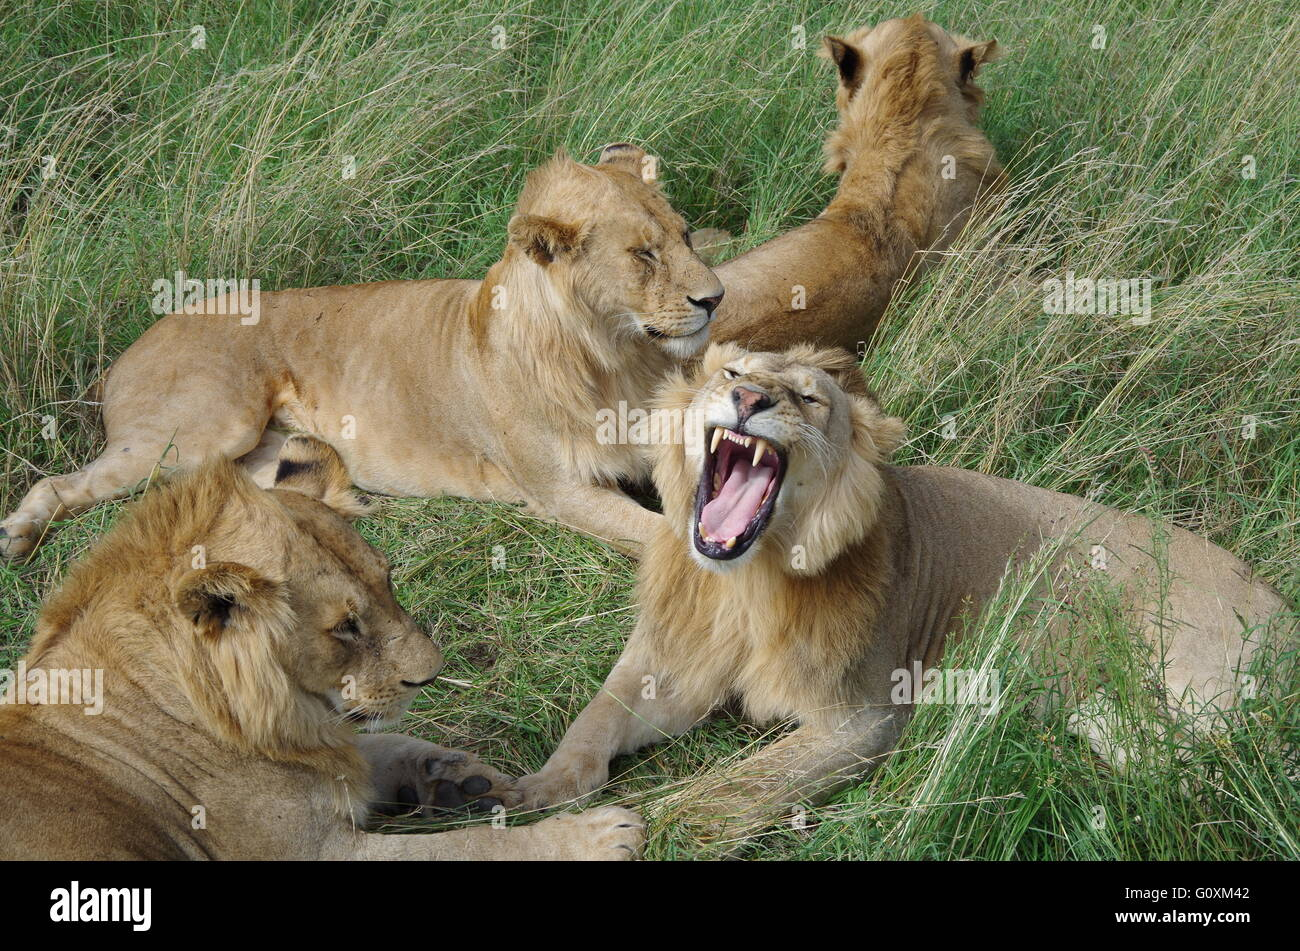 lion yawning - Stock Image